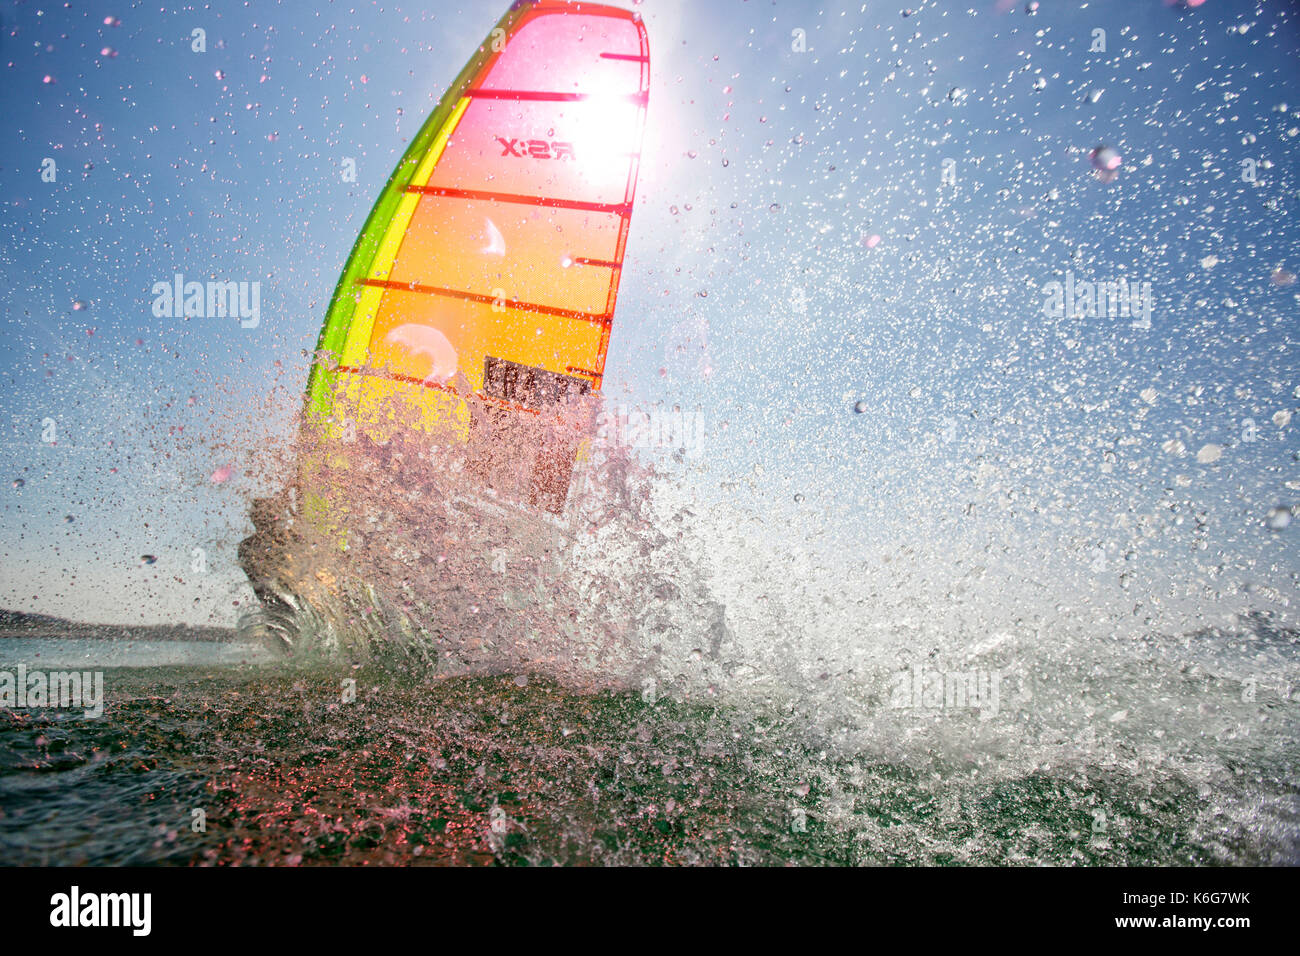 Rsx Windsurf Board High Resolution Stock Photography And Images Alamy